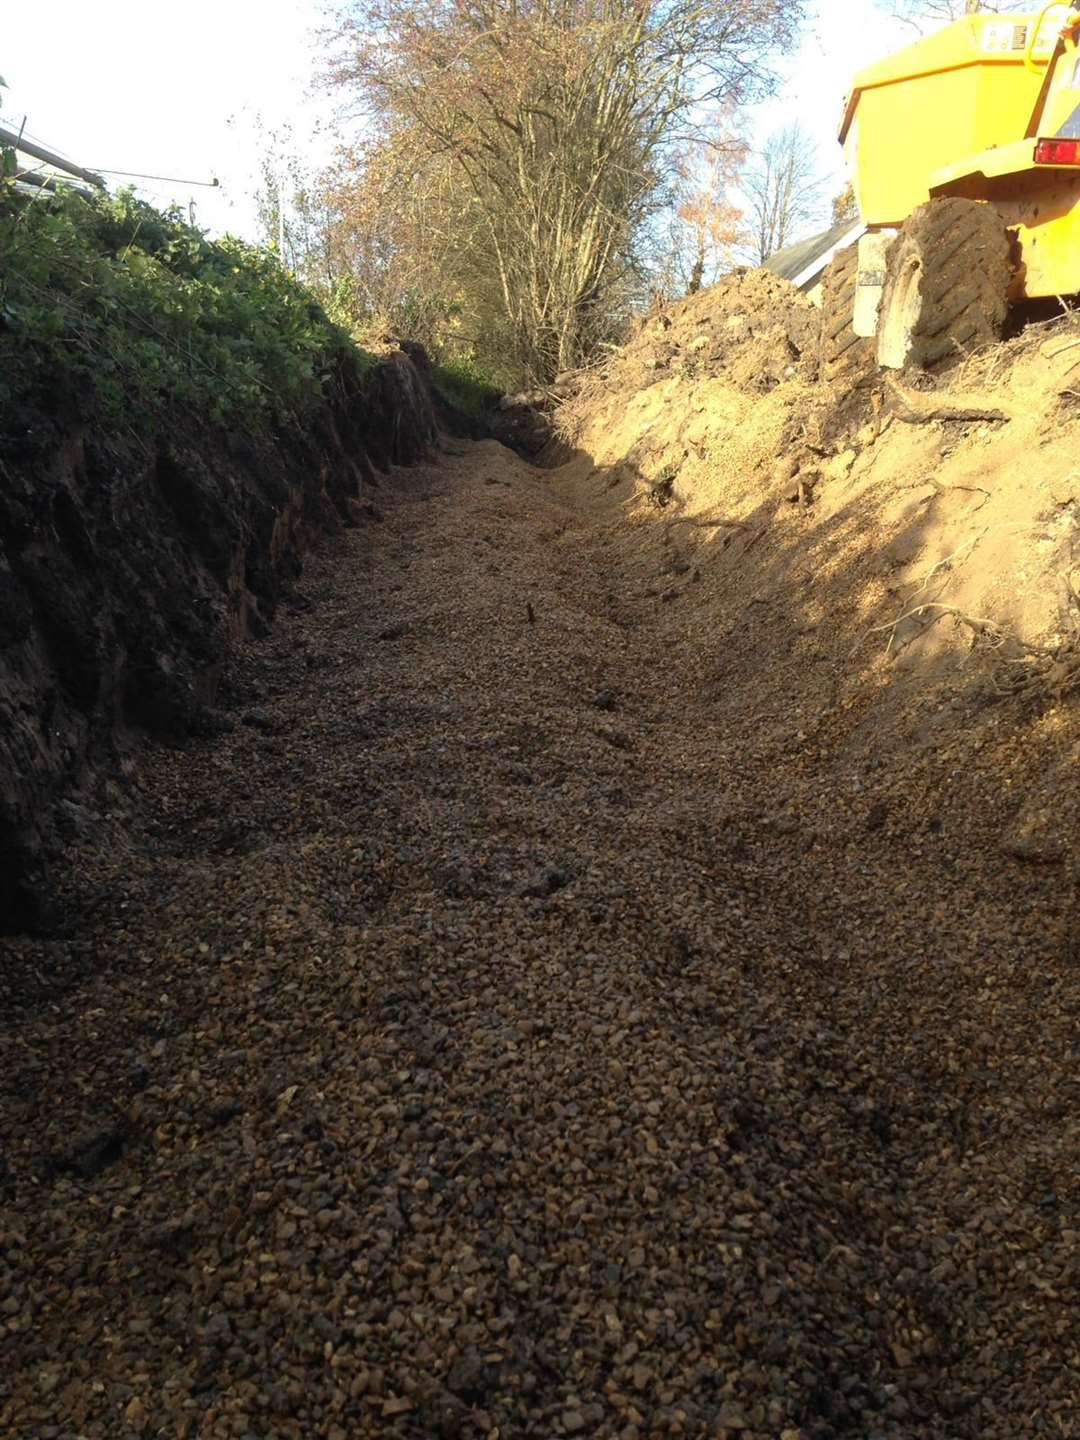 Developer Guy James Ltd says they have properly piped a drainage ditch and have submitted images including this one to prove it. (44370447)